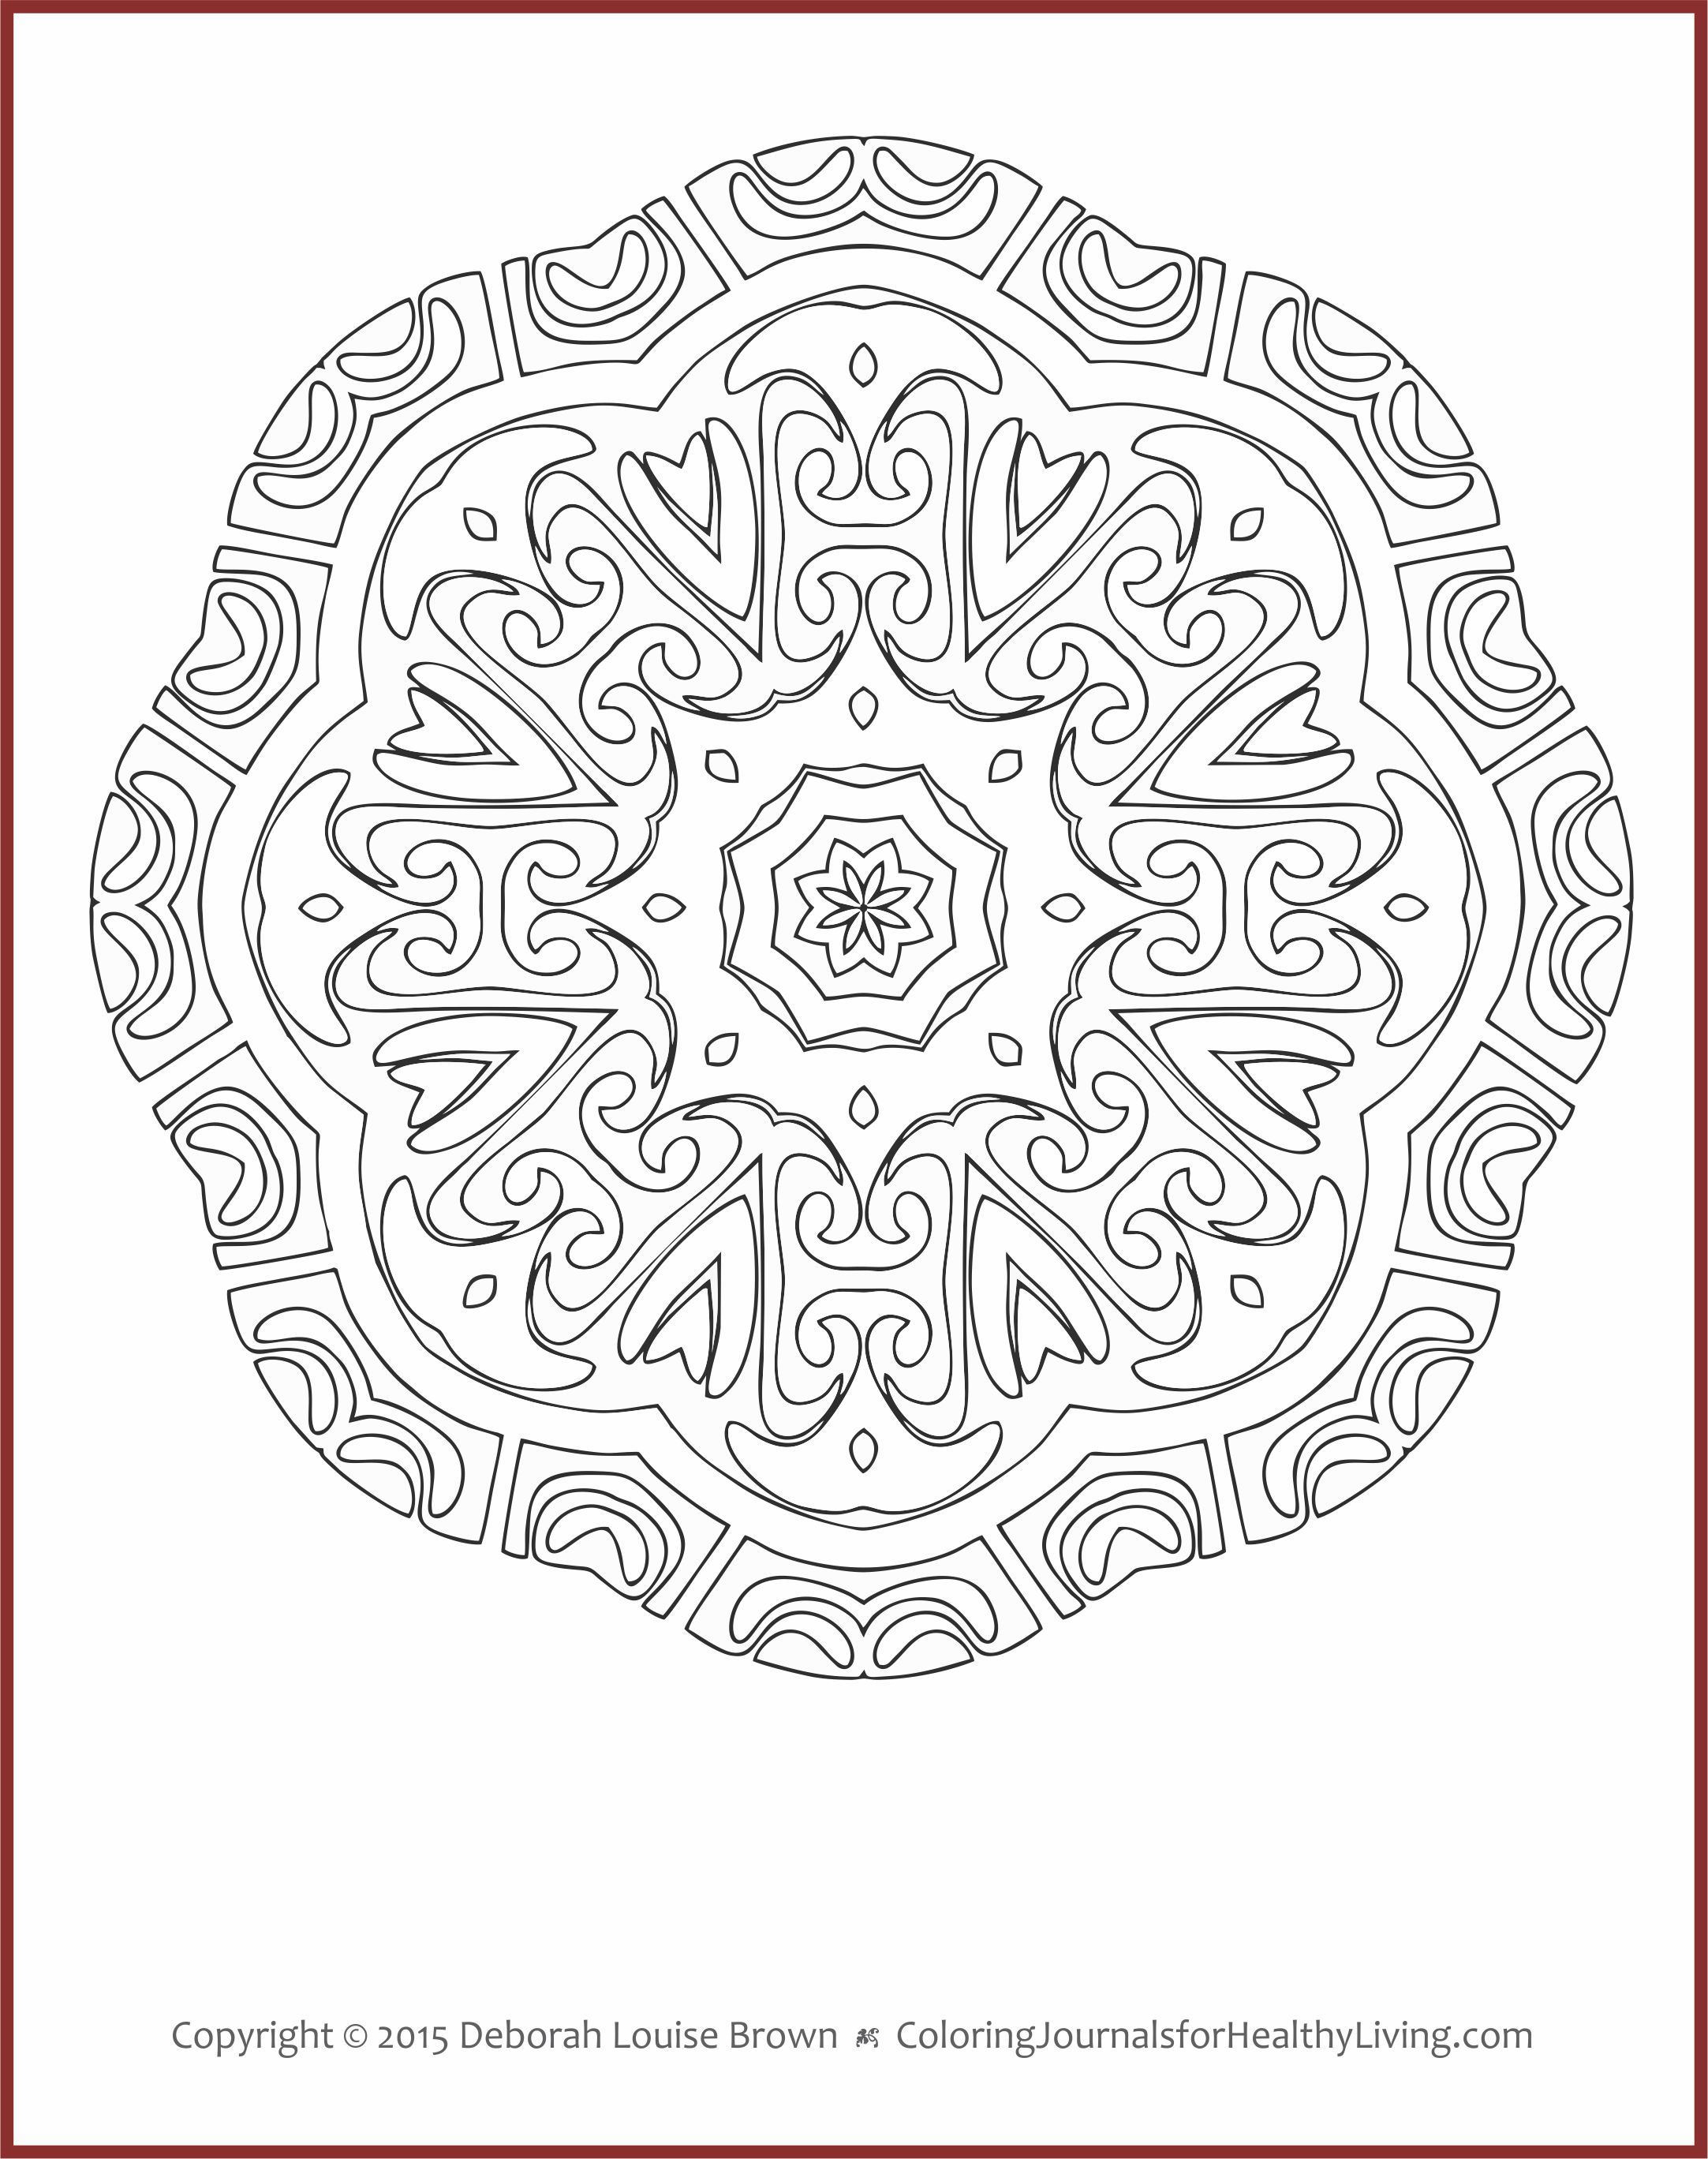 live healthy coloring pages - photo#34